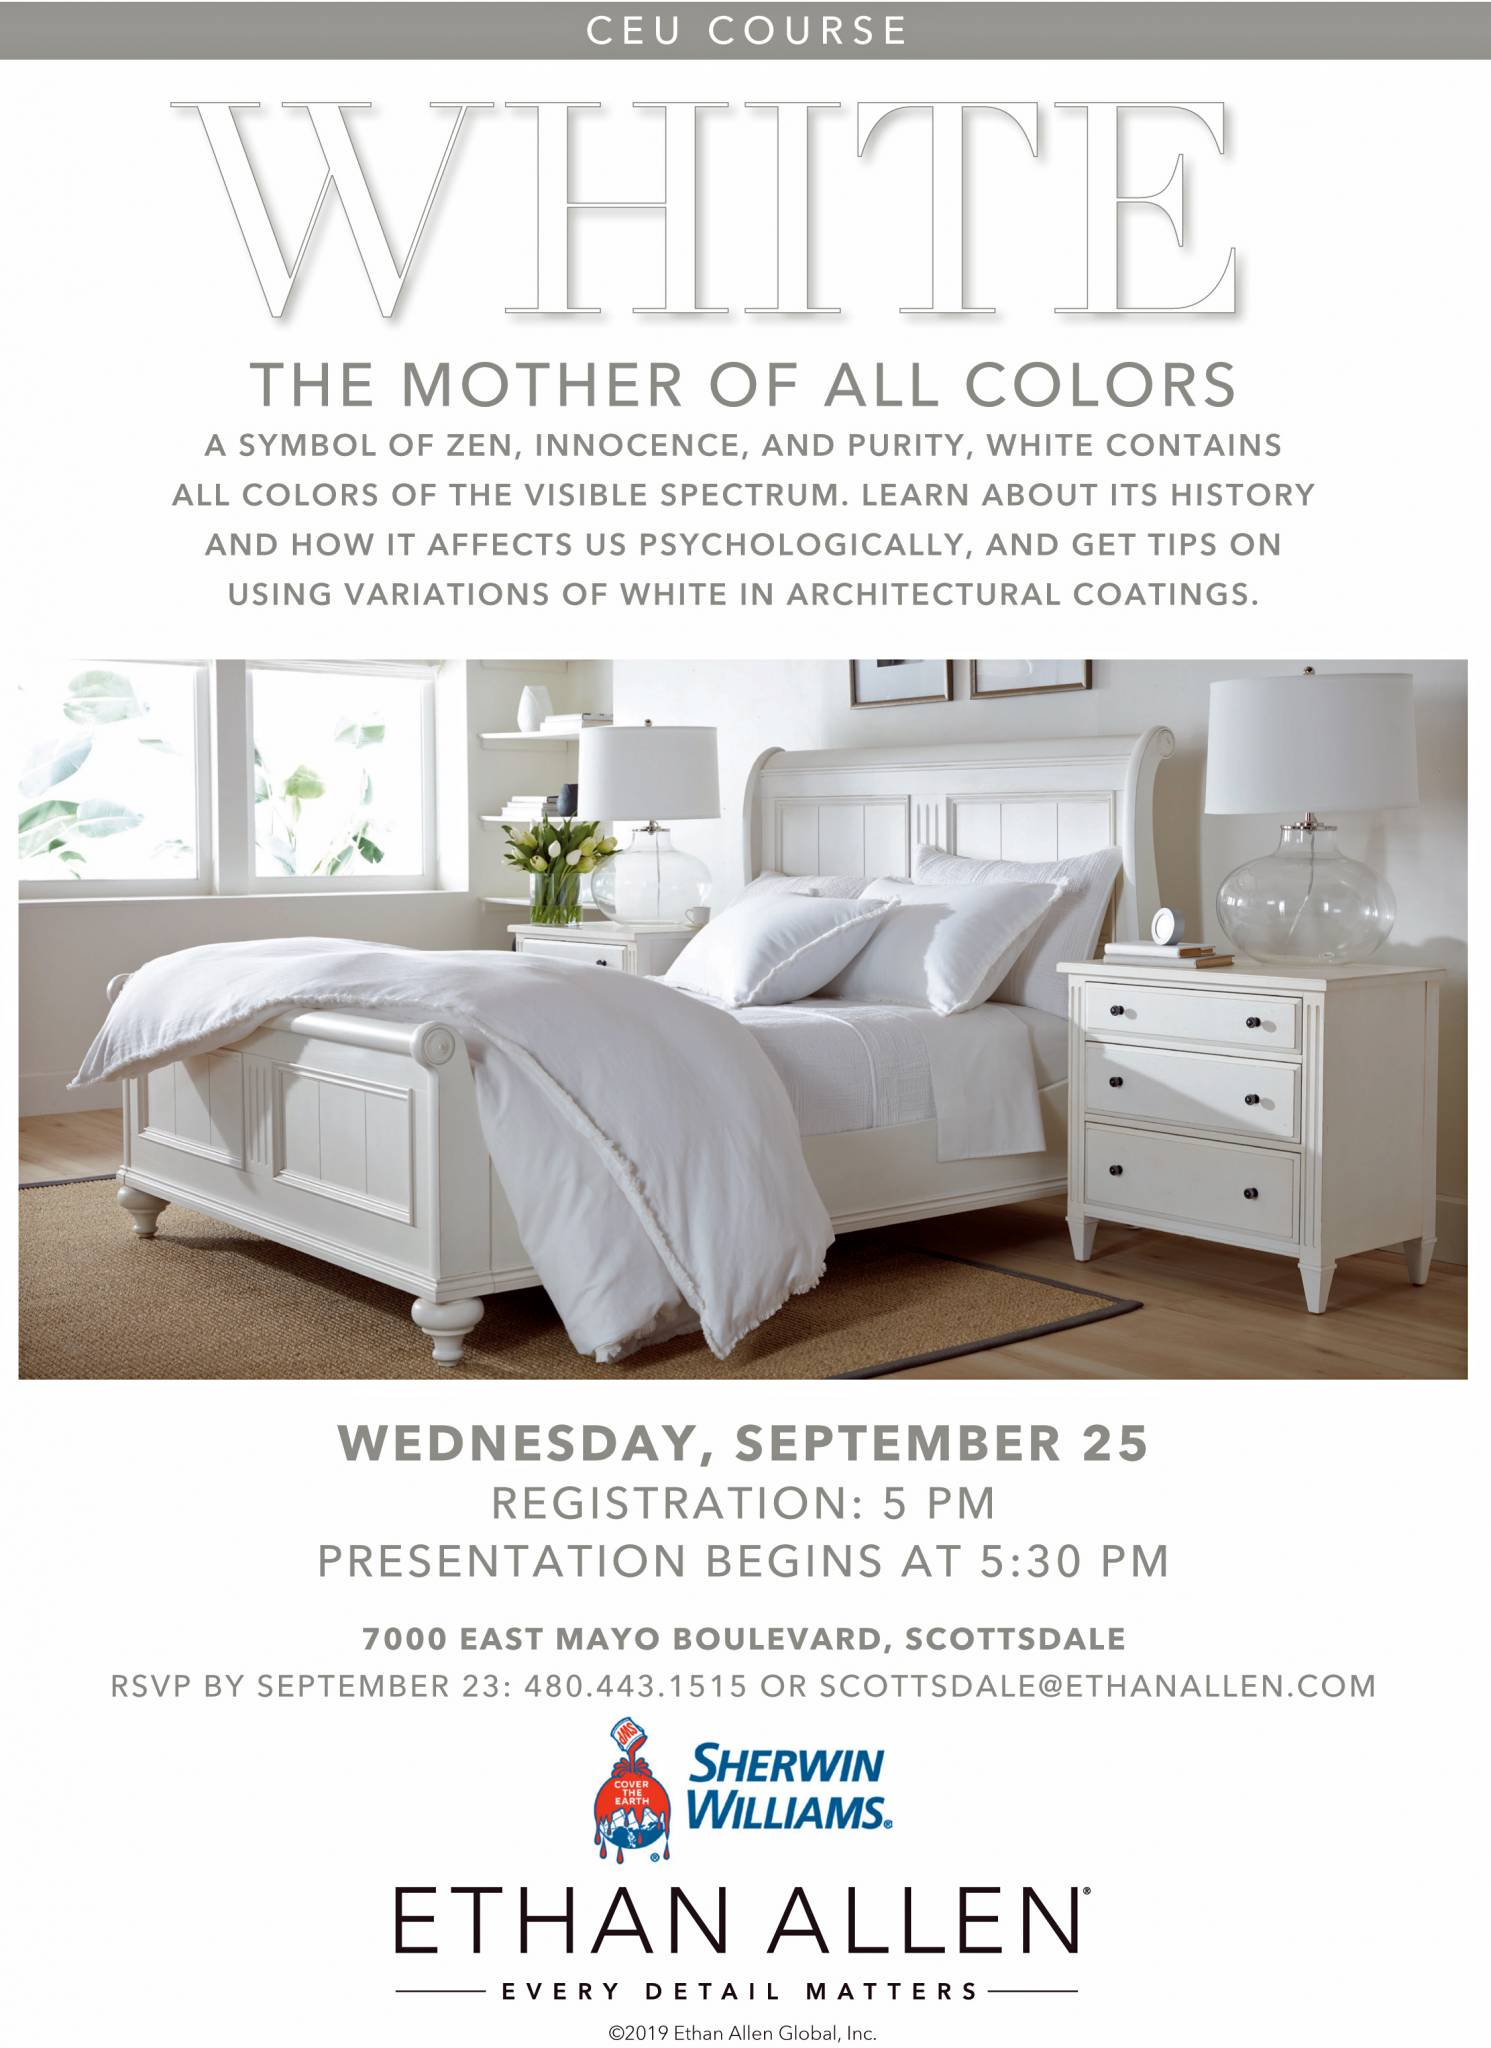 Ethan Allen & Sherwin Williams offering CEU – Sept 25